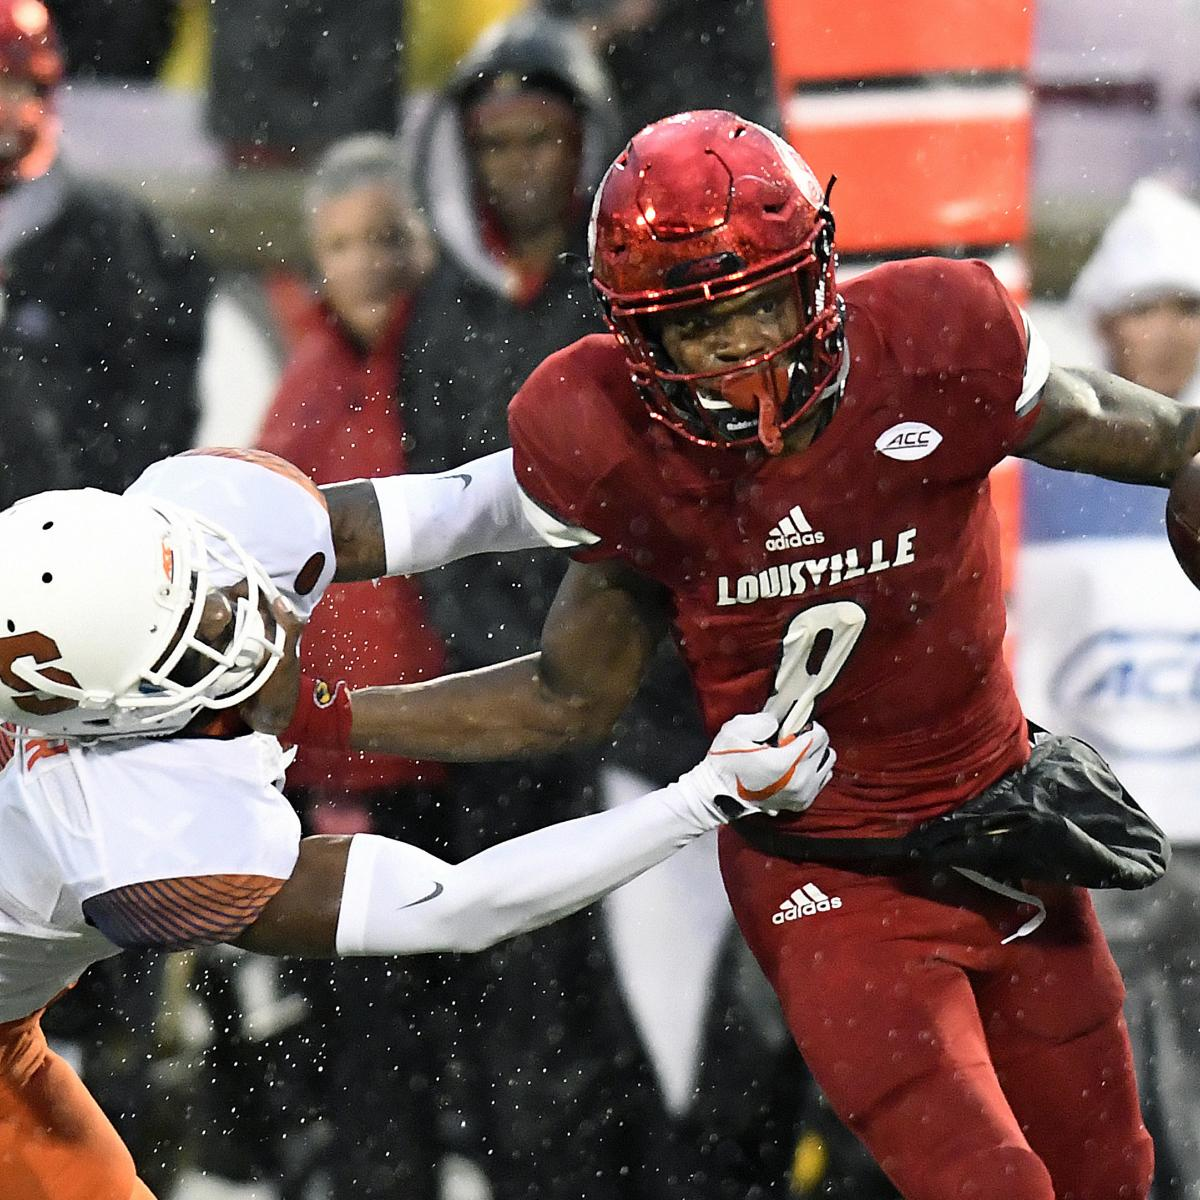 Redshirt Rookies: 2018 NFL Draft Prospects Who Need Time